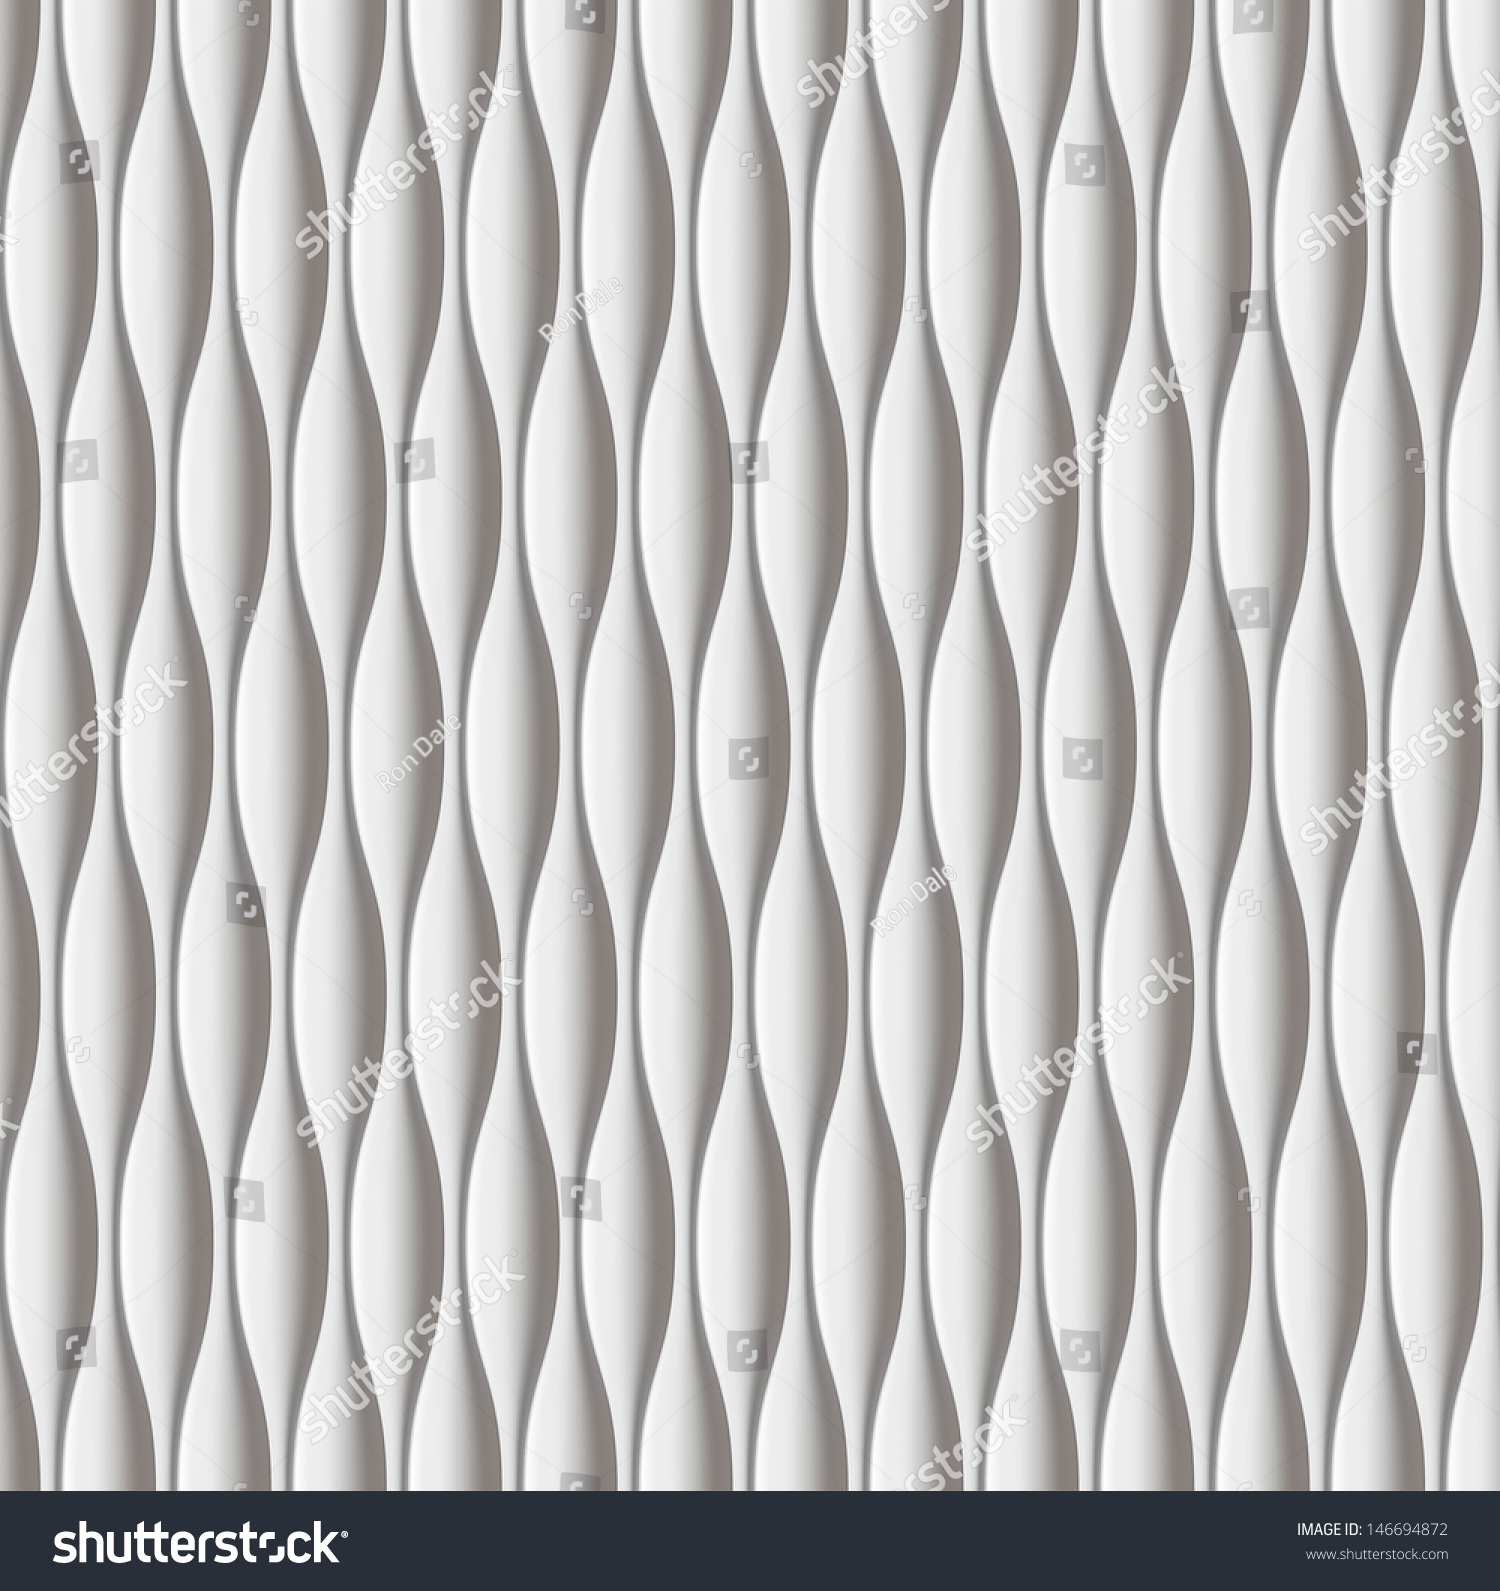 White Seamless Texture Vertical Wavy Background Stock Vector